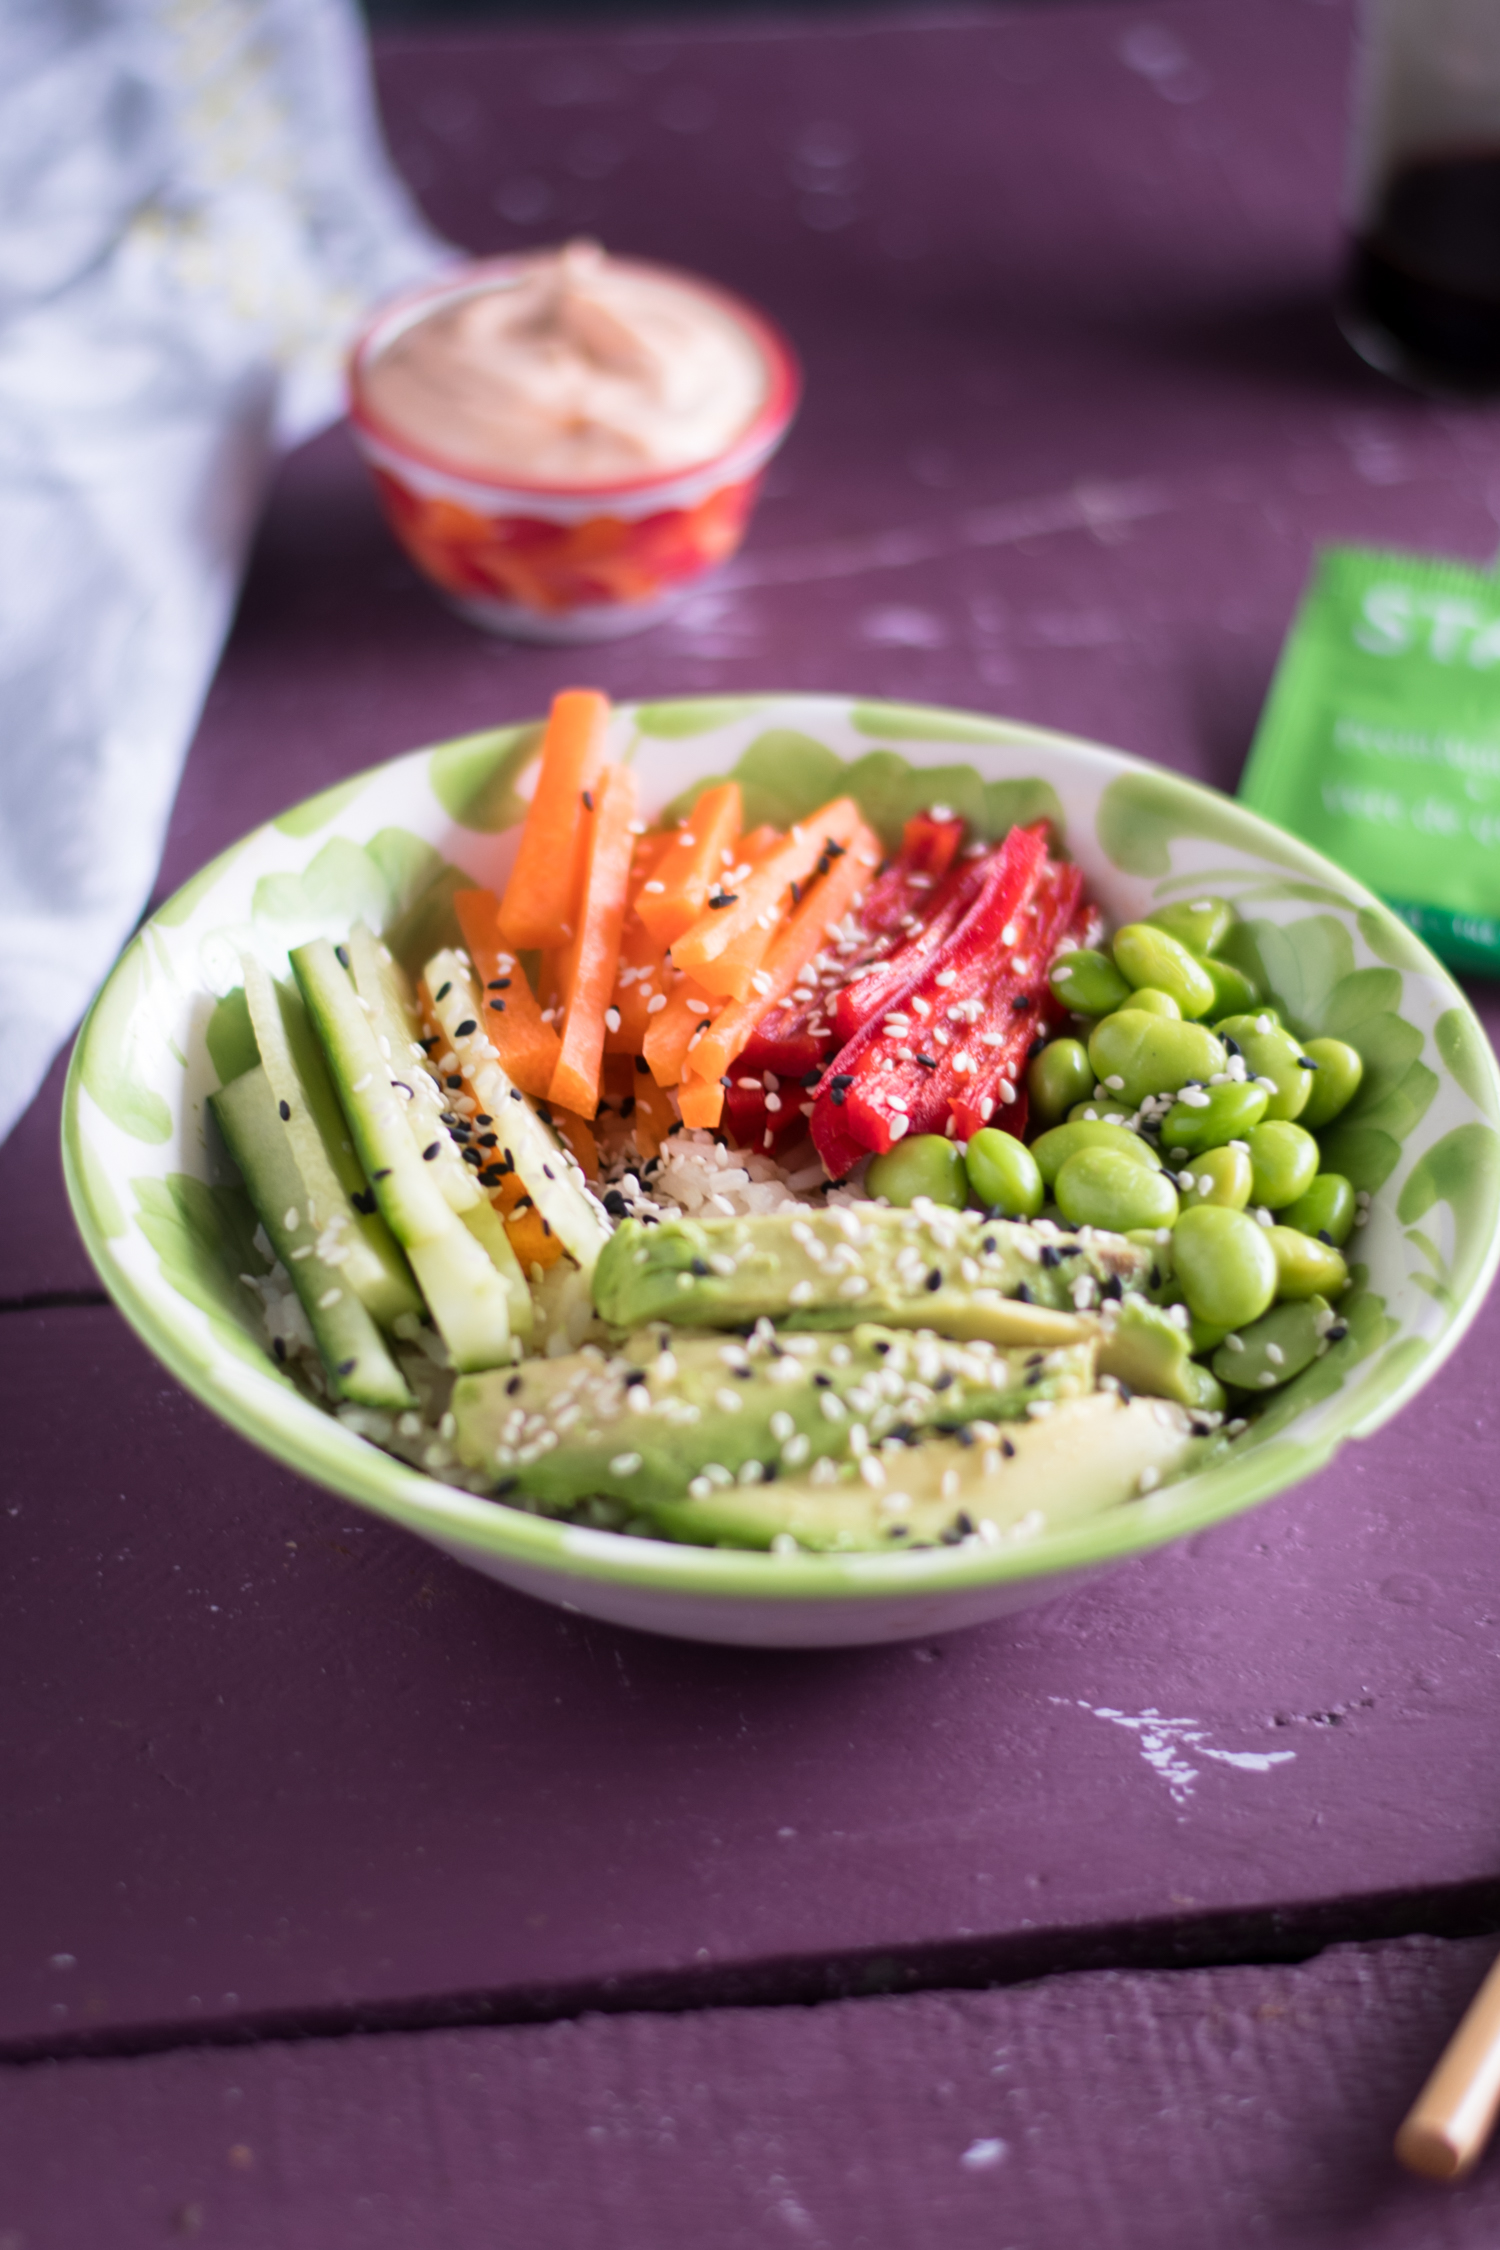 Vegan Sushi Bowls with green tea rice. A healthy plant-based meal! #vegan #rice #sushi #bowl #recipes #healthy #food